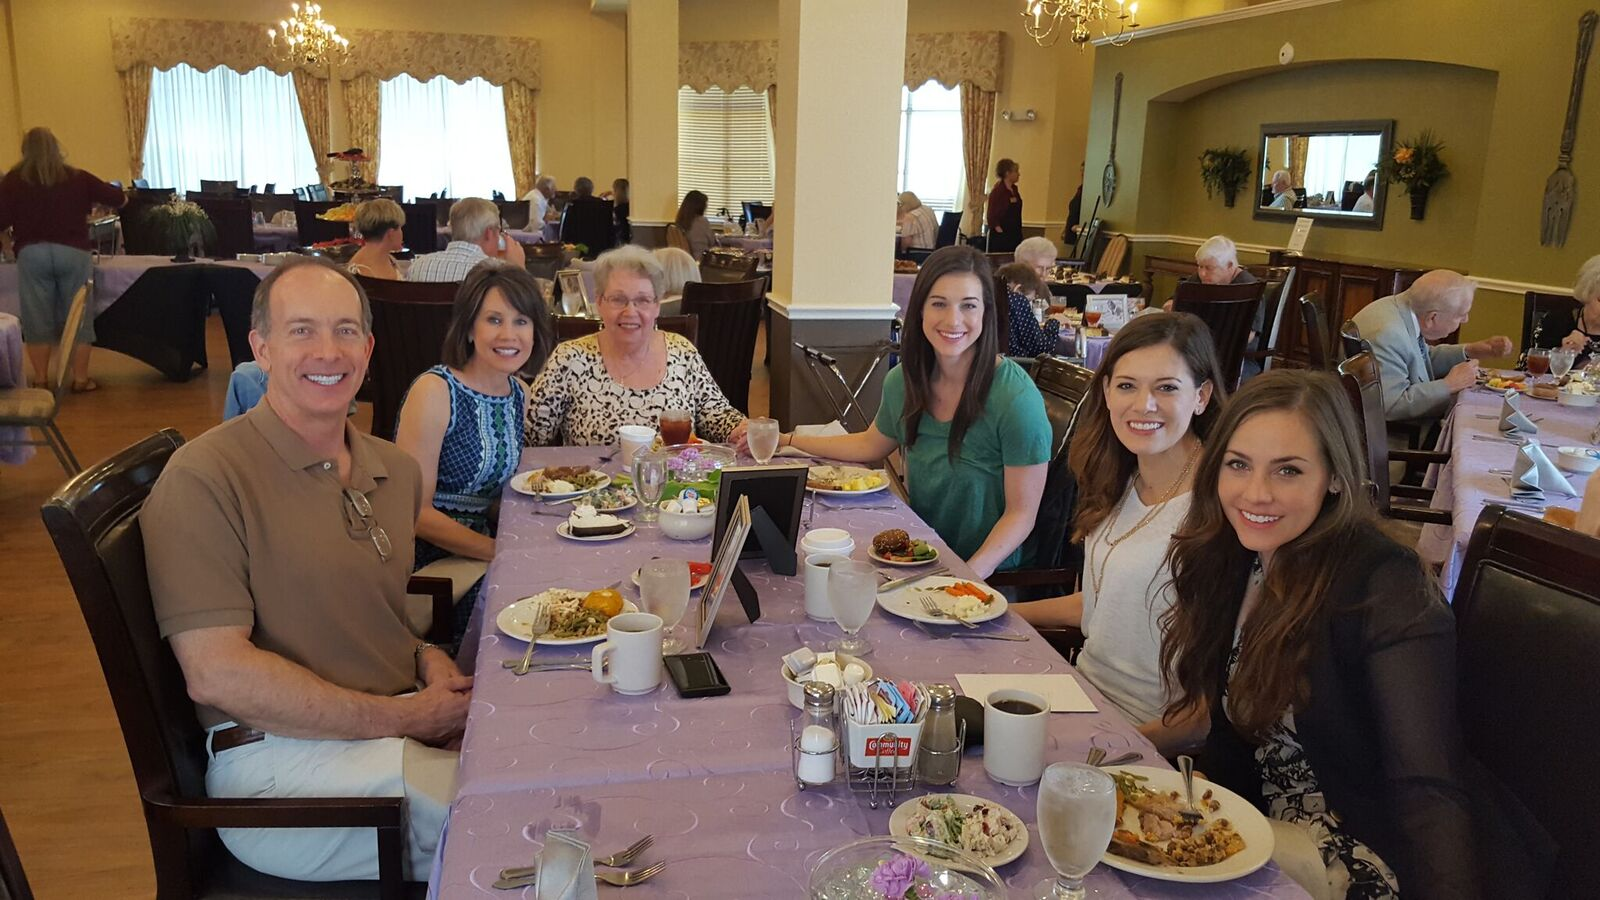 Mother's Day at Mountain Creek Retirement!